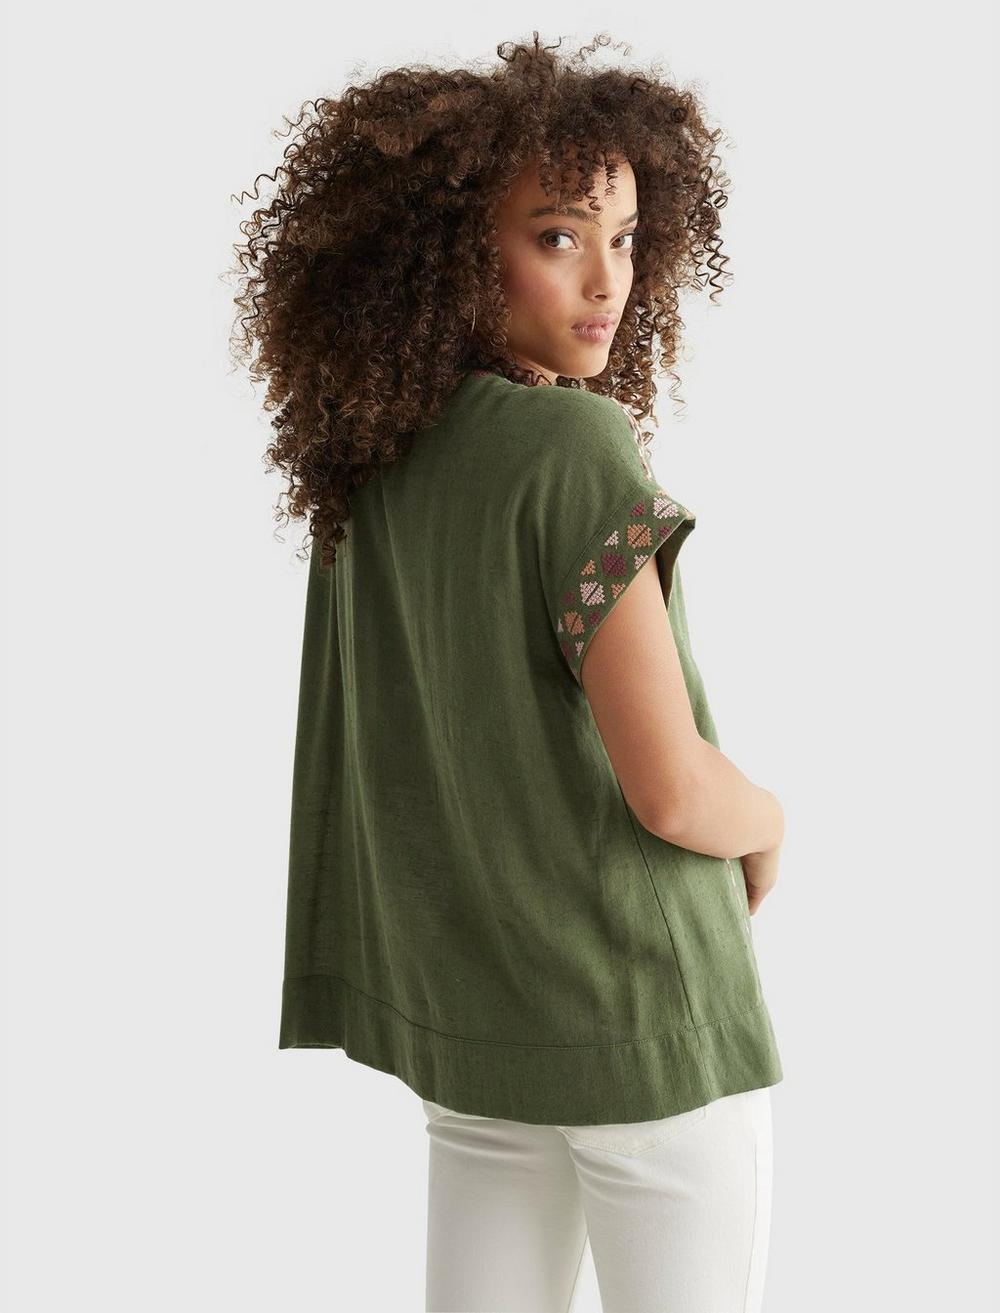 SHORT SLEEVE EMBROIDERED PEASANT TOP, image 4